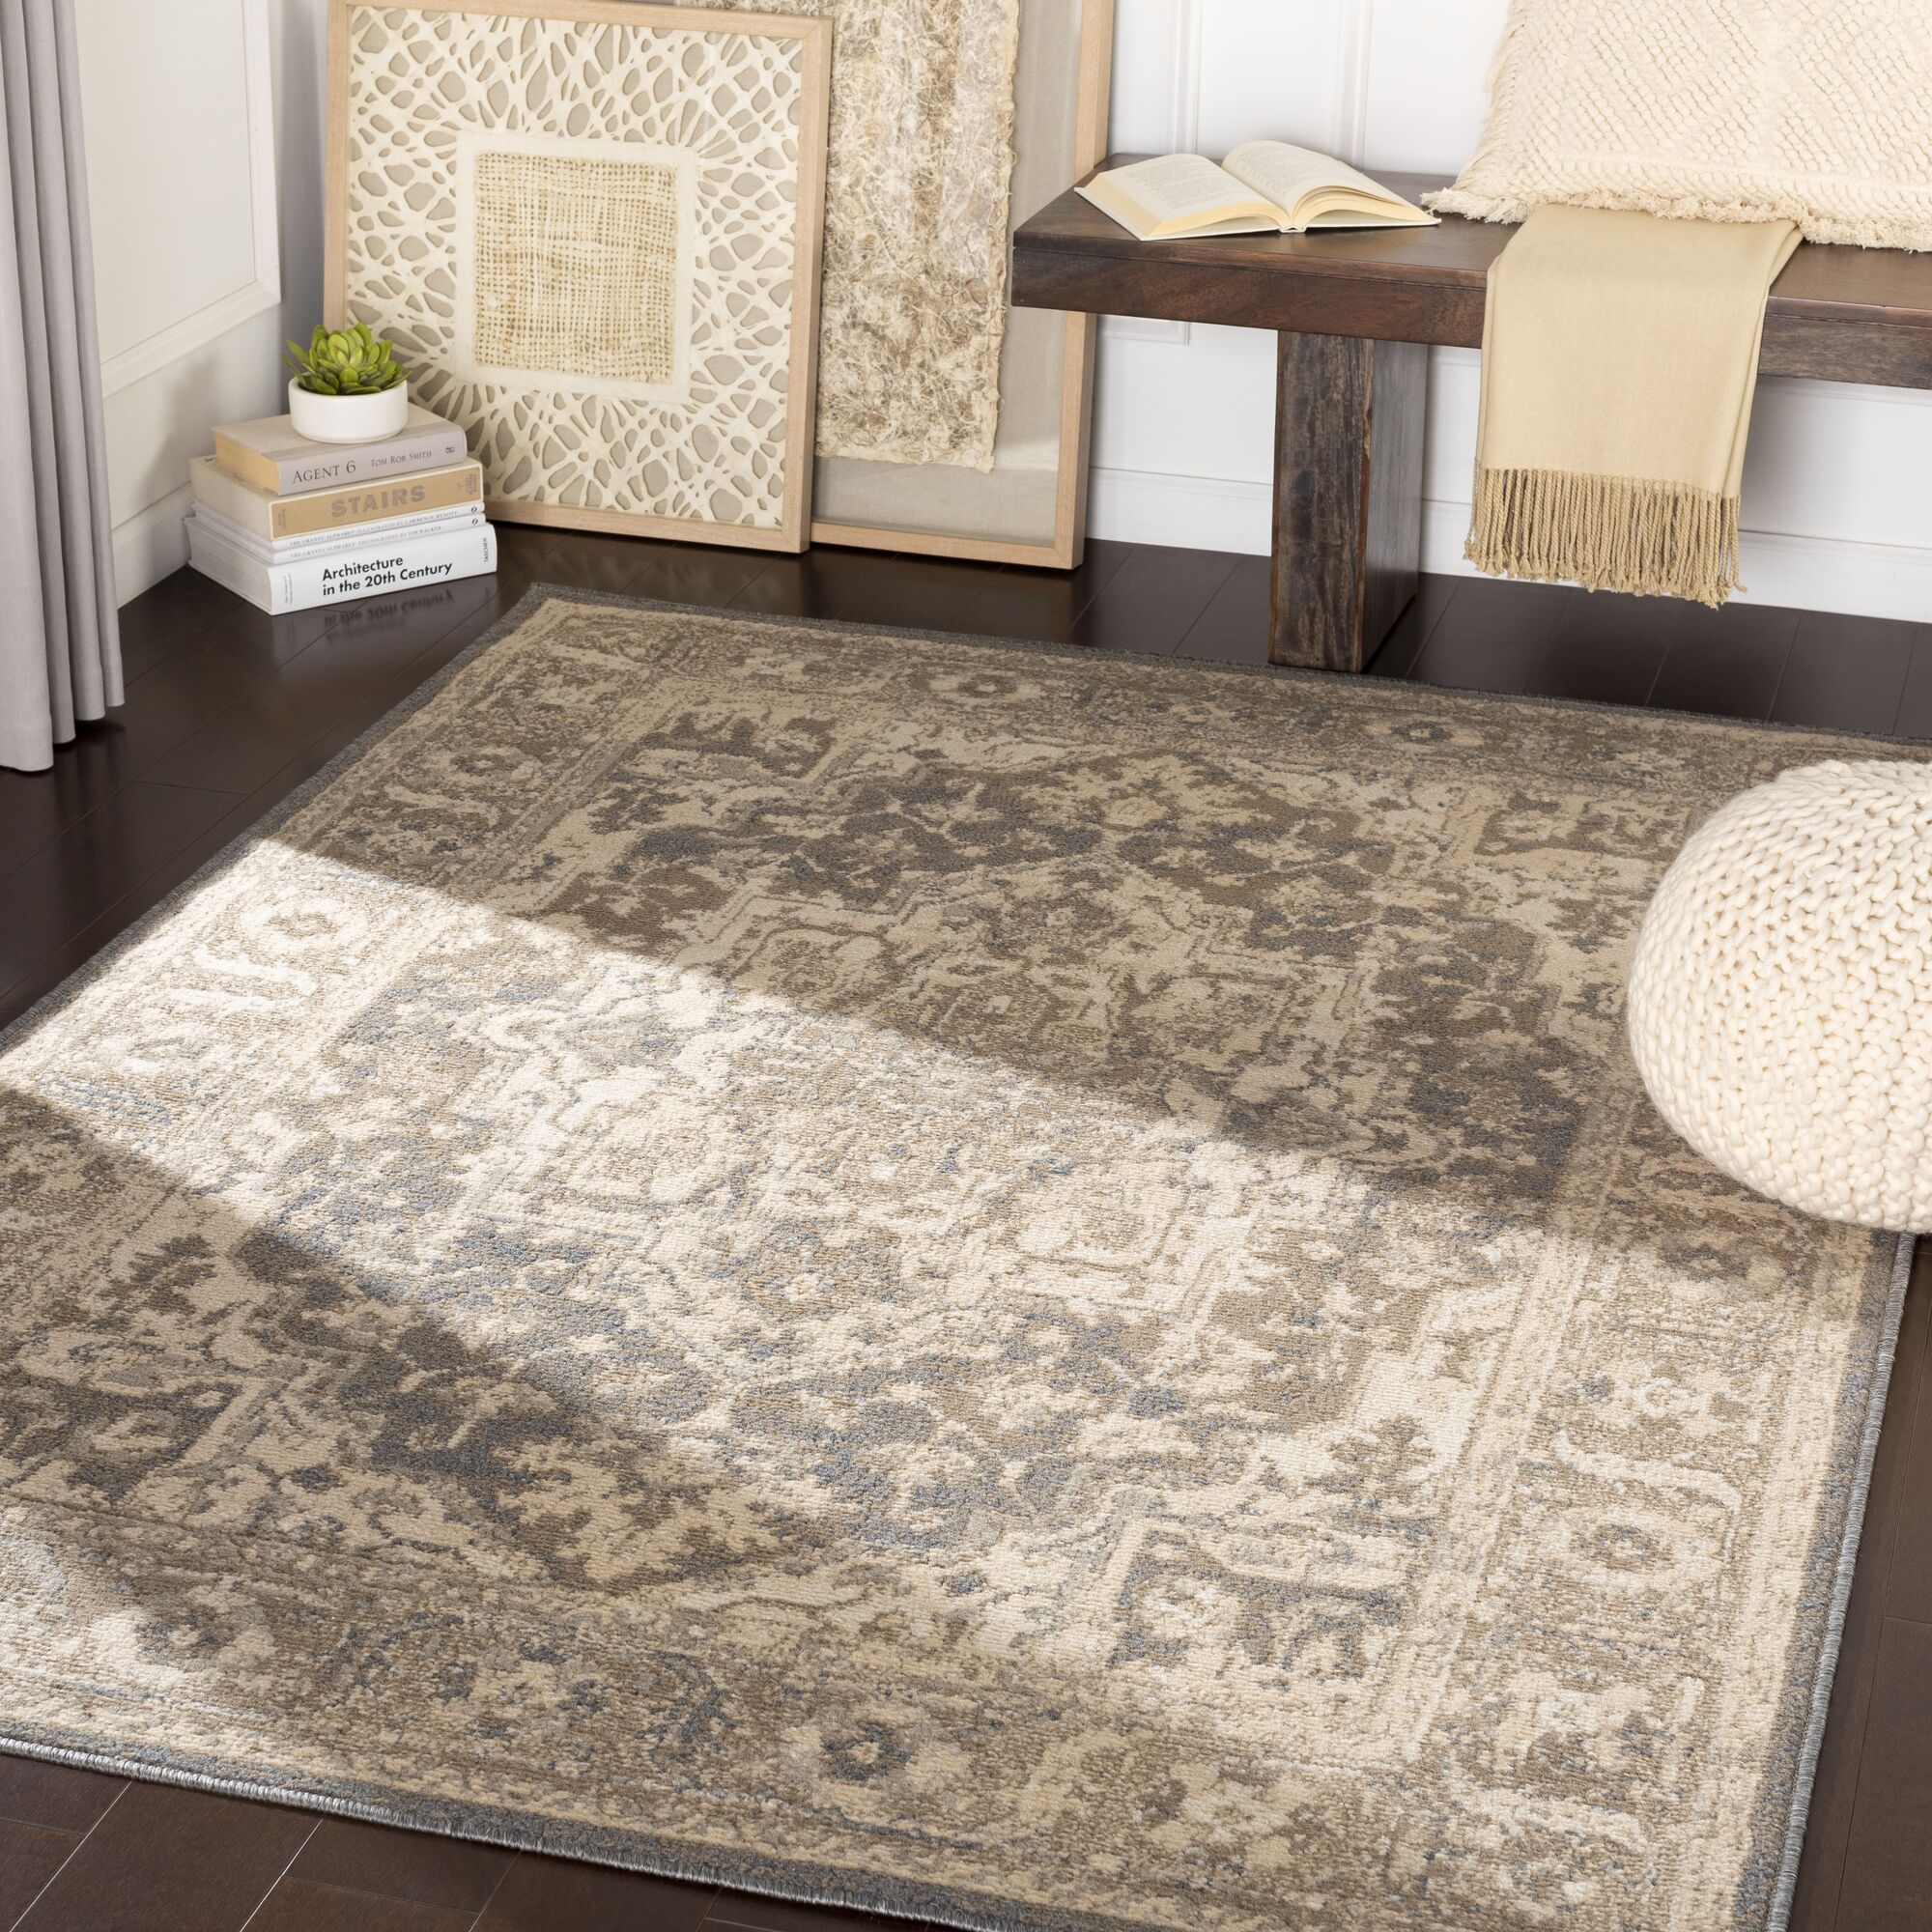 Maidenhead Charcoal/Camel Area Rug Rug Size: Rectangle 7'10